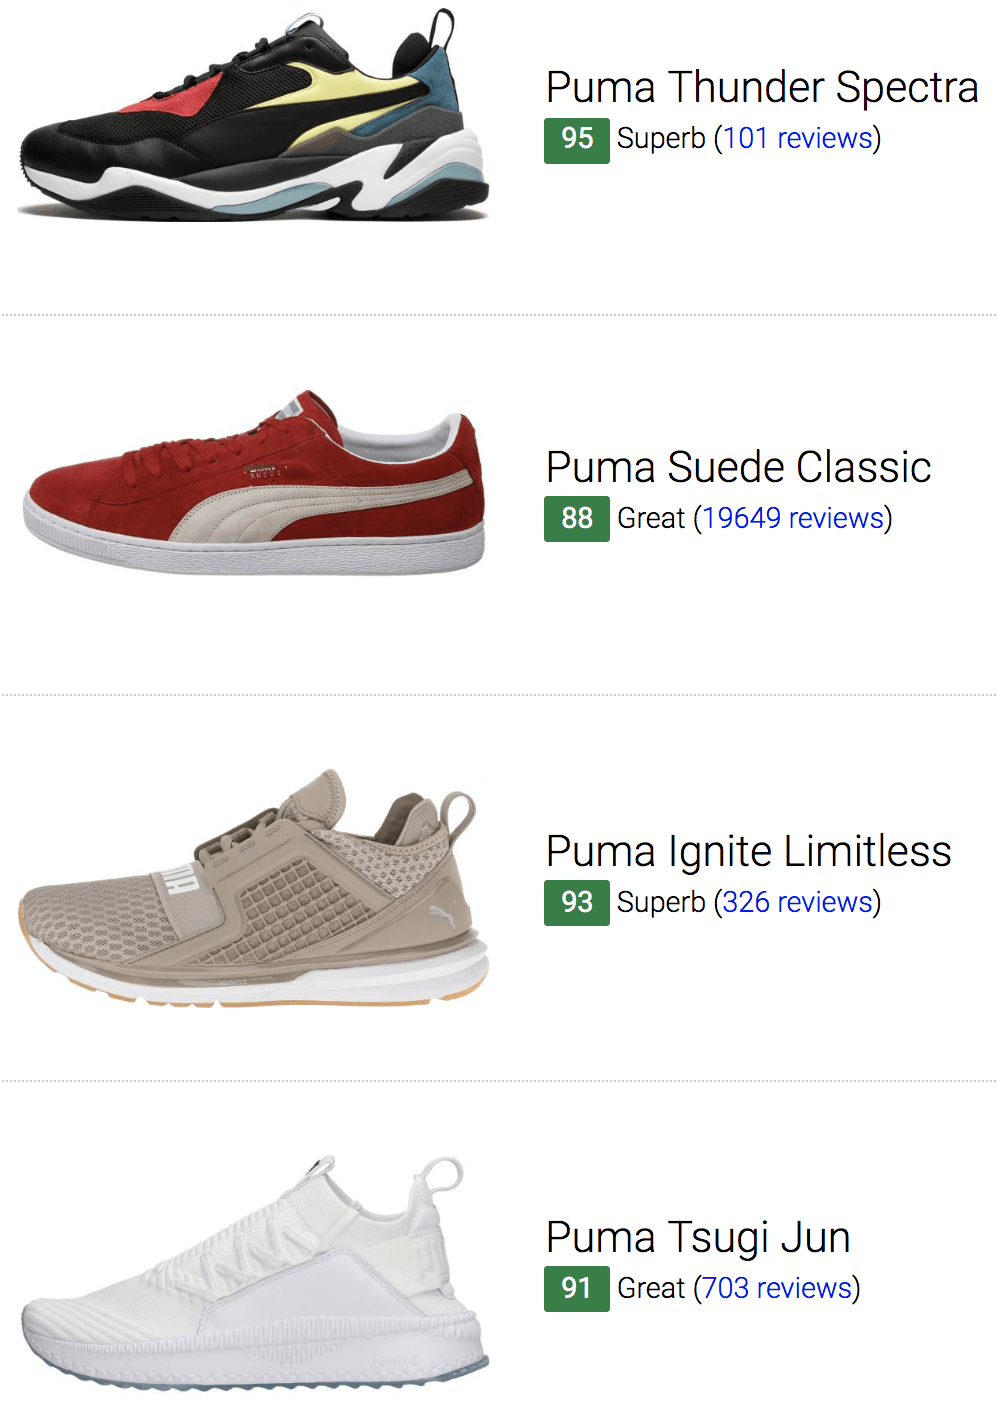 30+ Best Puma Sneakers (Buyer's Guide) | RunRepeat